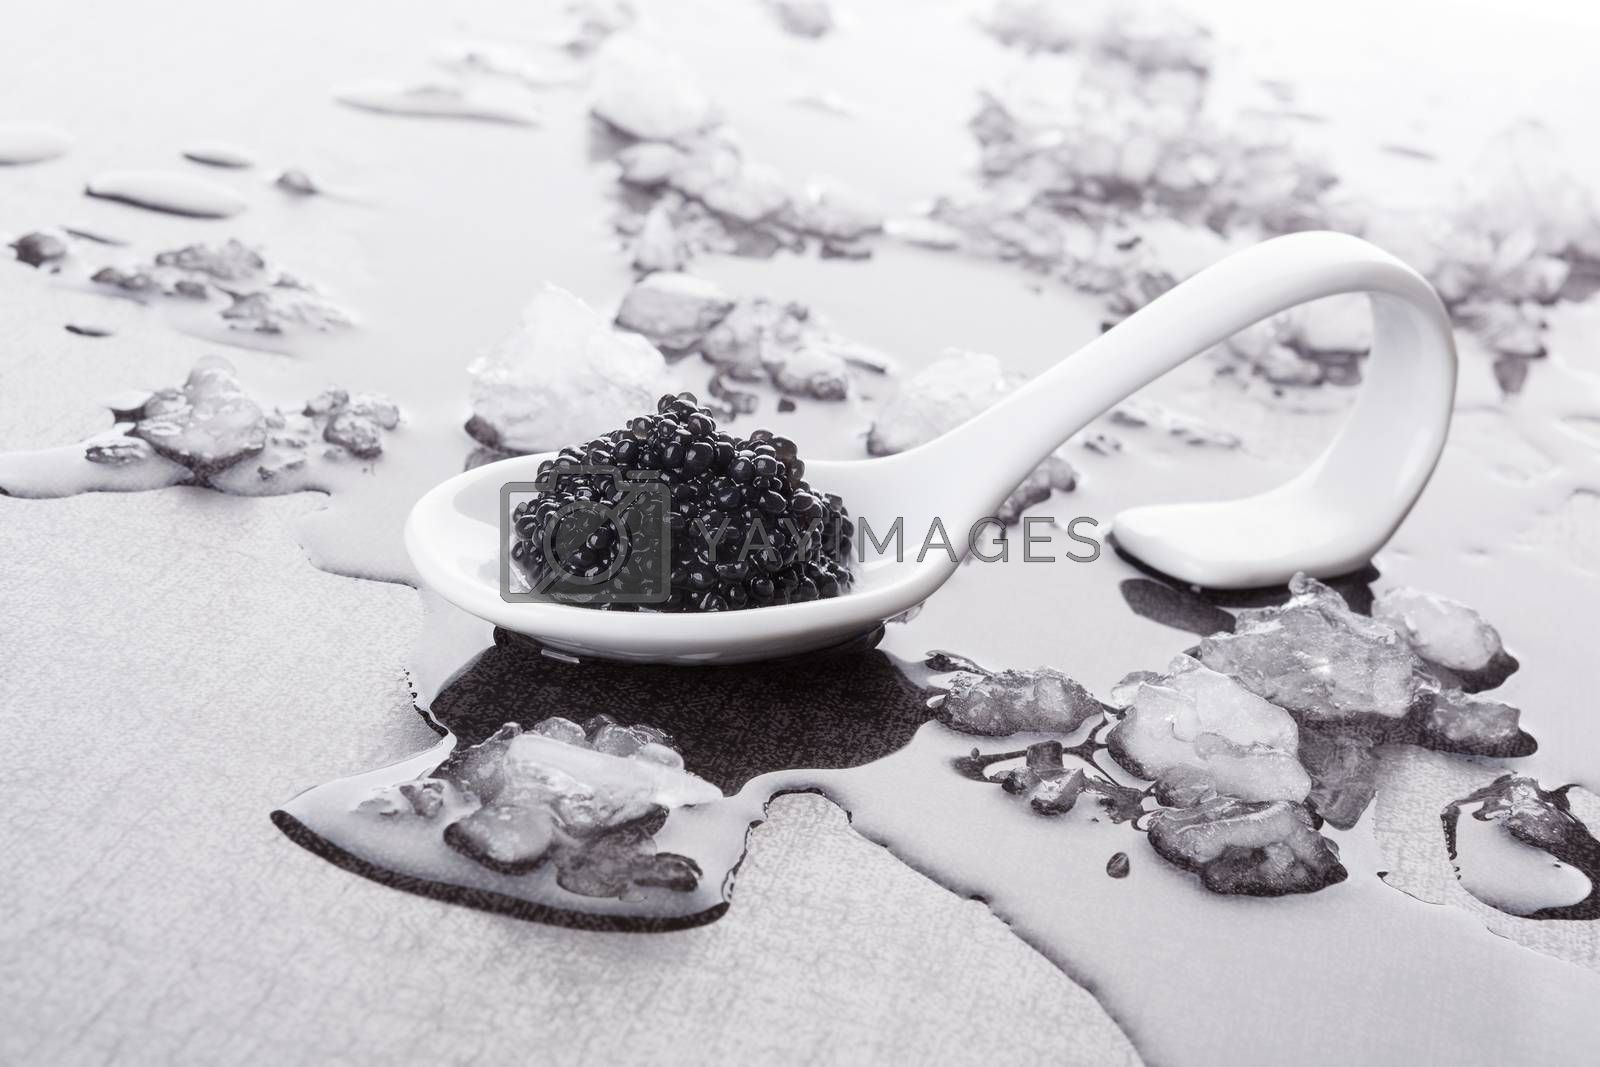 Black caviar on white spoon on ice. Luxurious culinary delicacy, traditional russian black caviar.